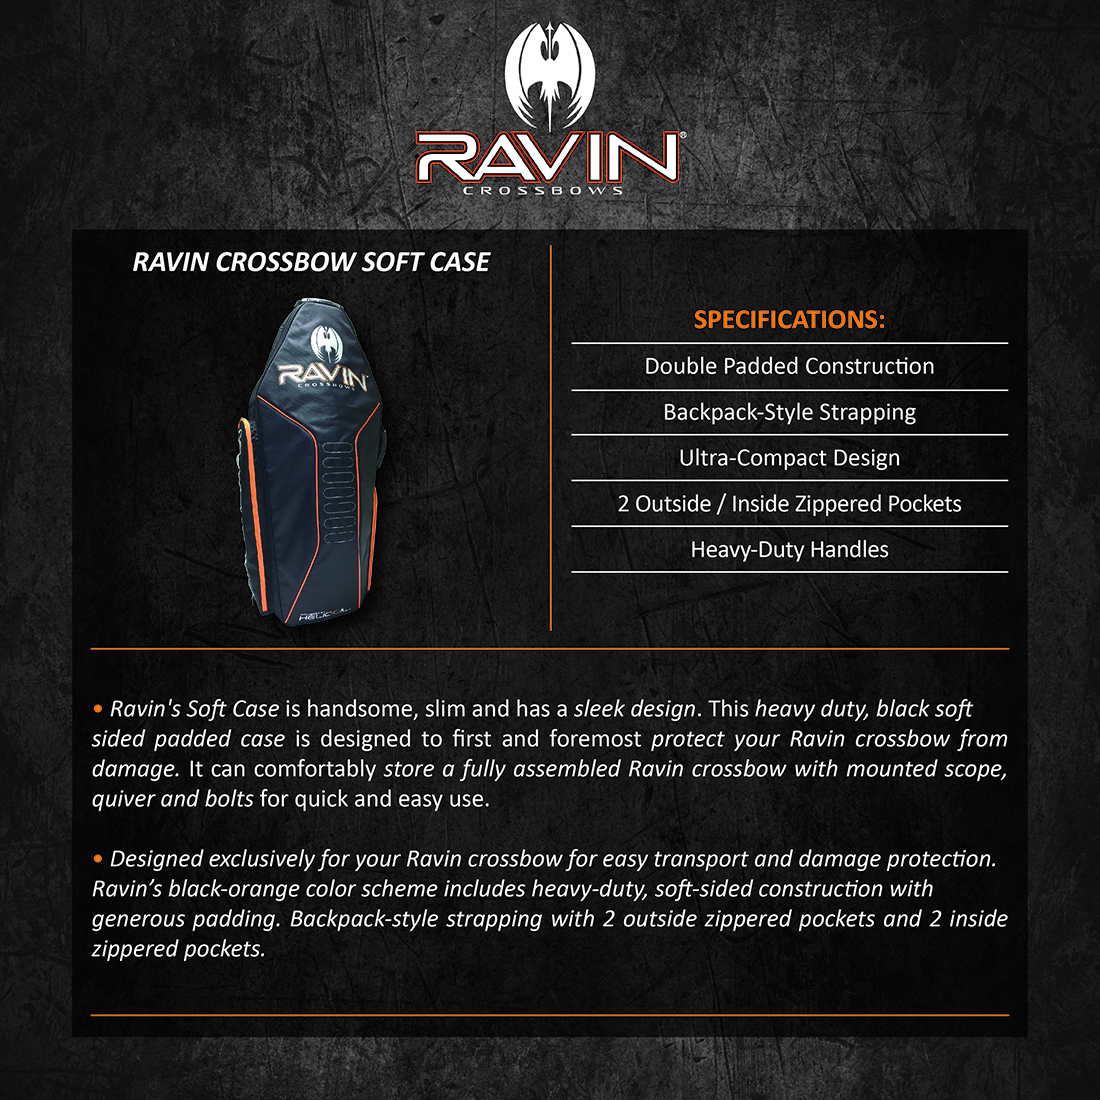 Ravin_Crossbow_Soft_Case_Product_Description